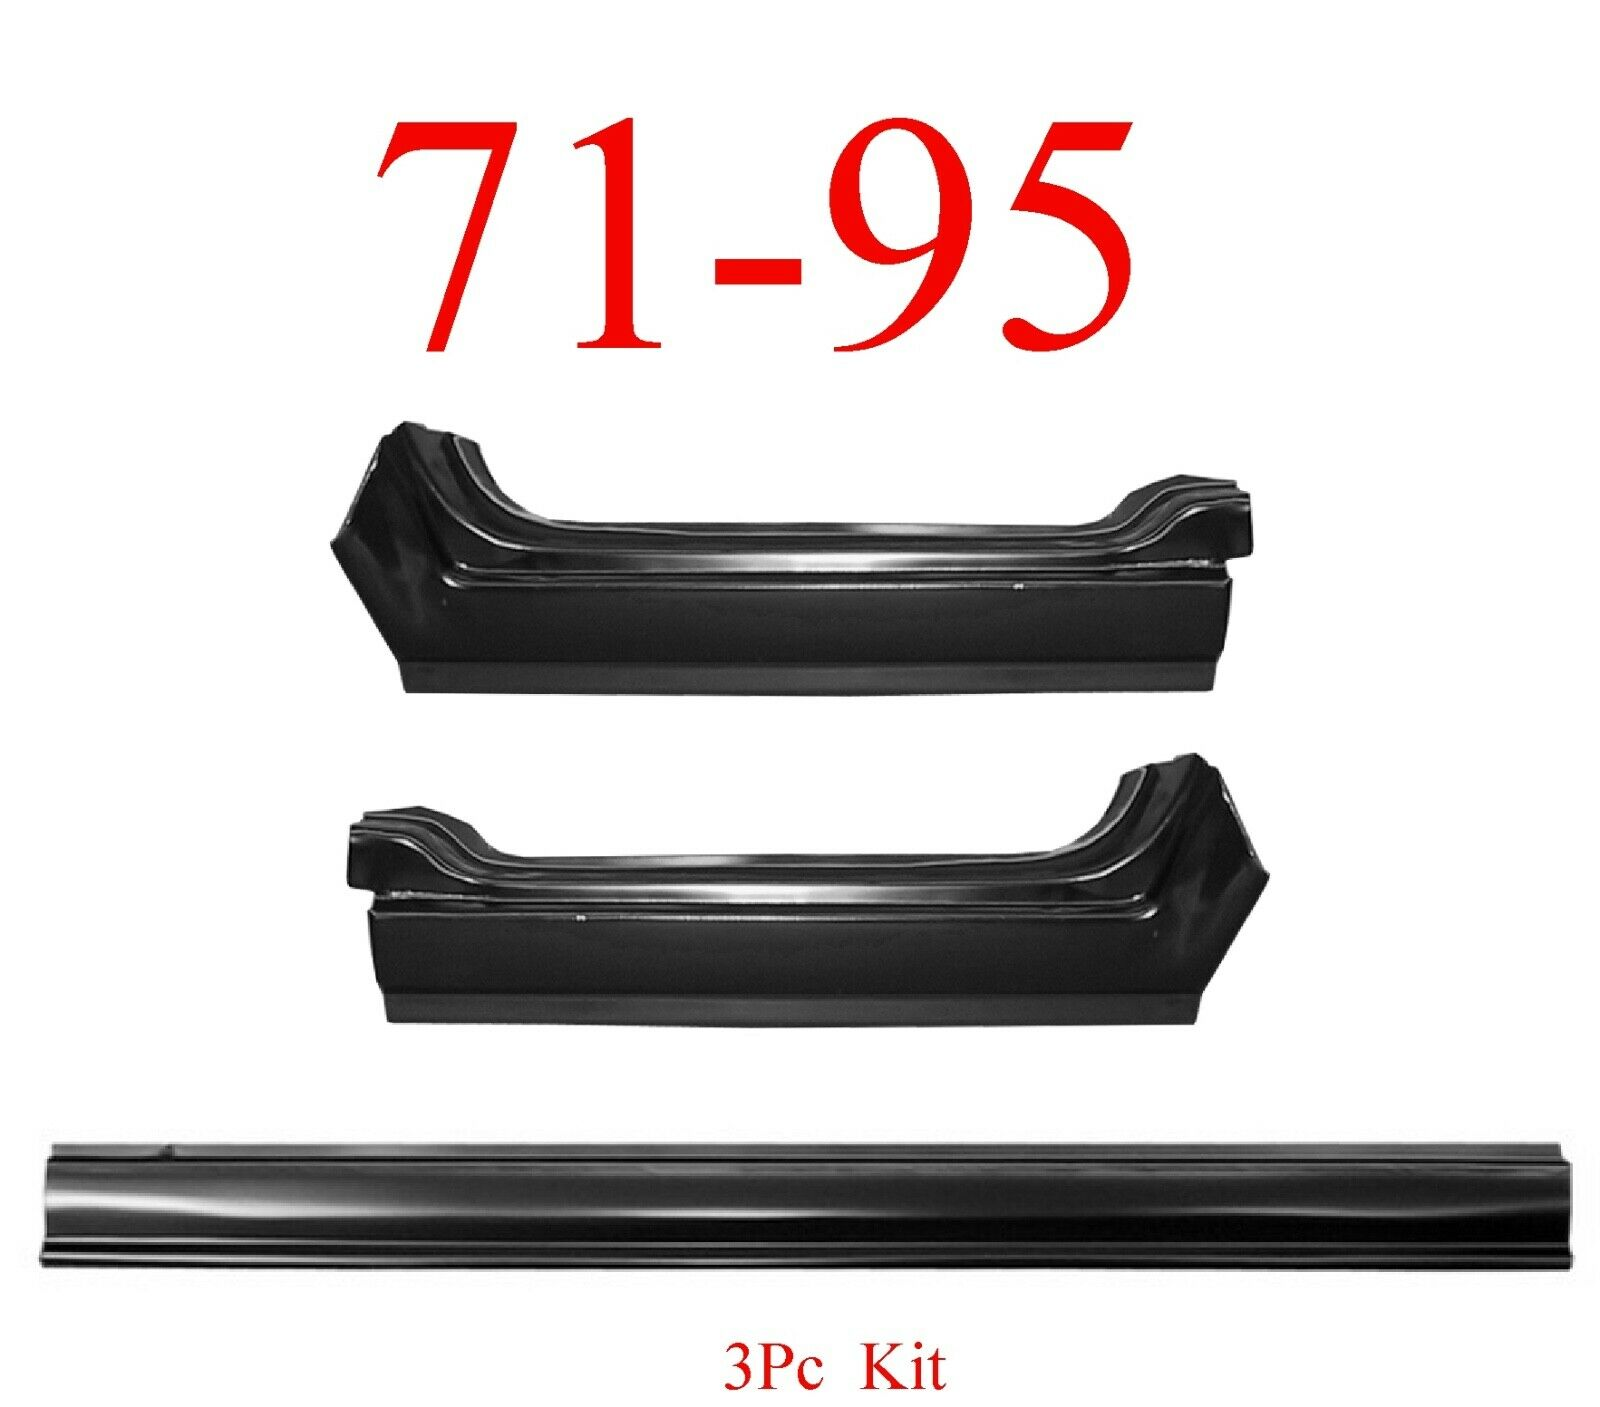 3Pc 71-95 Chevy Van Rocker Panel Set